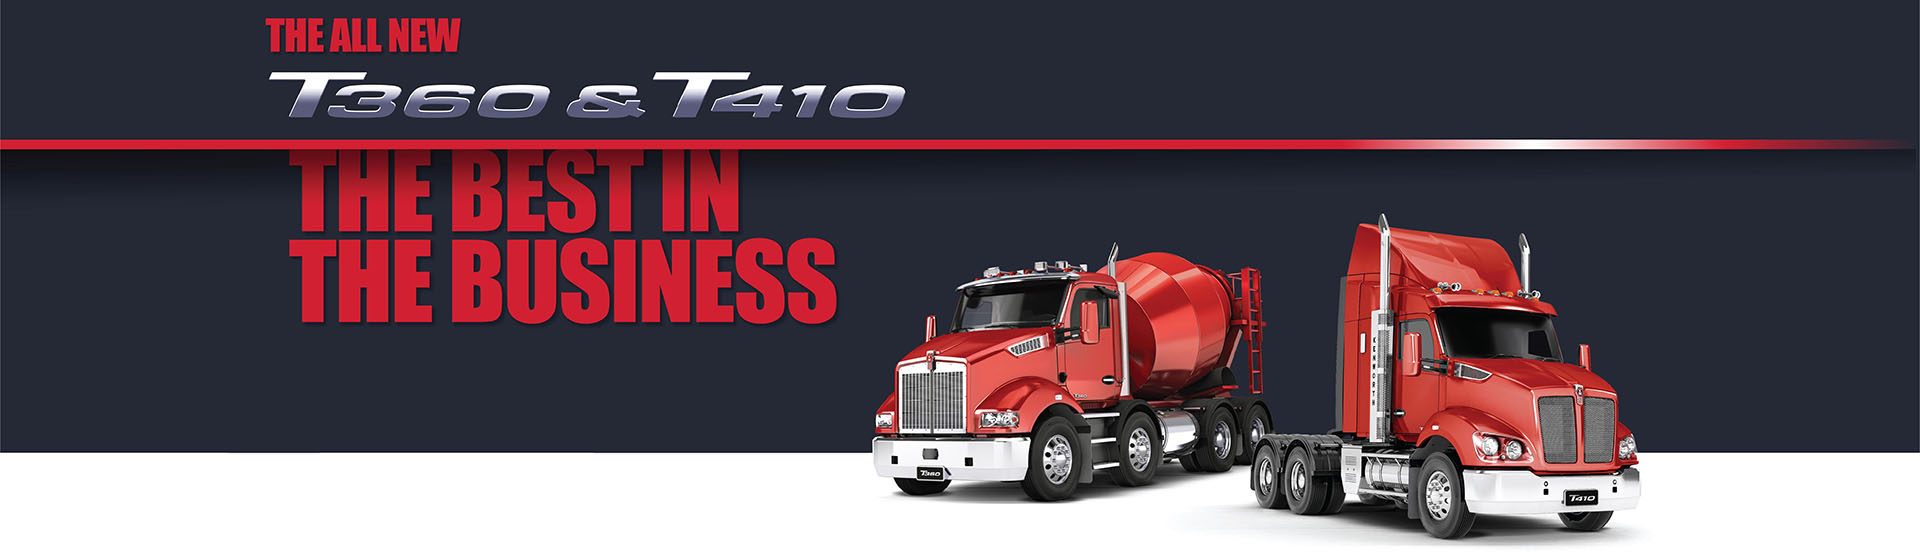 Kenworth T360 and T410